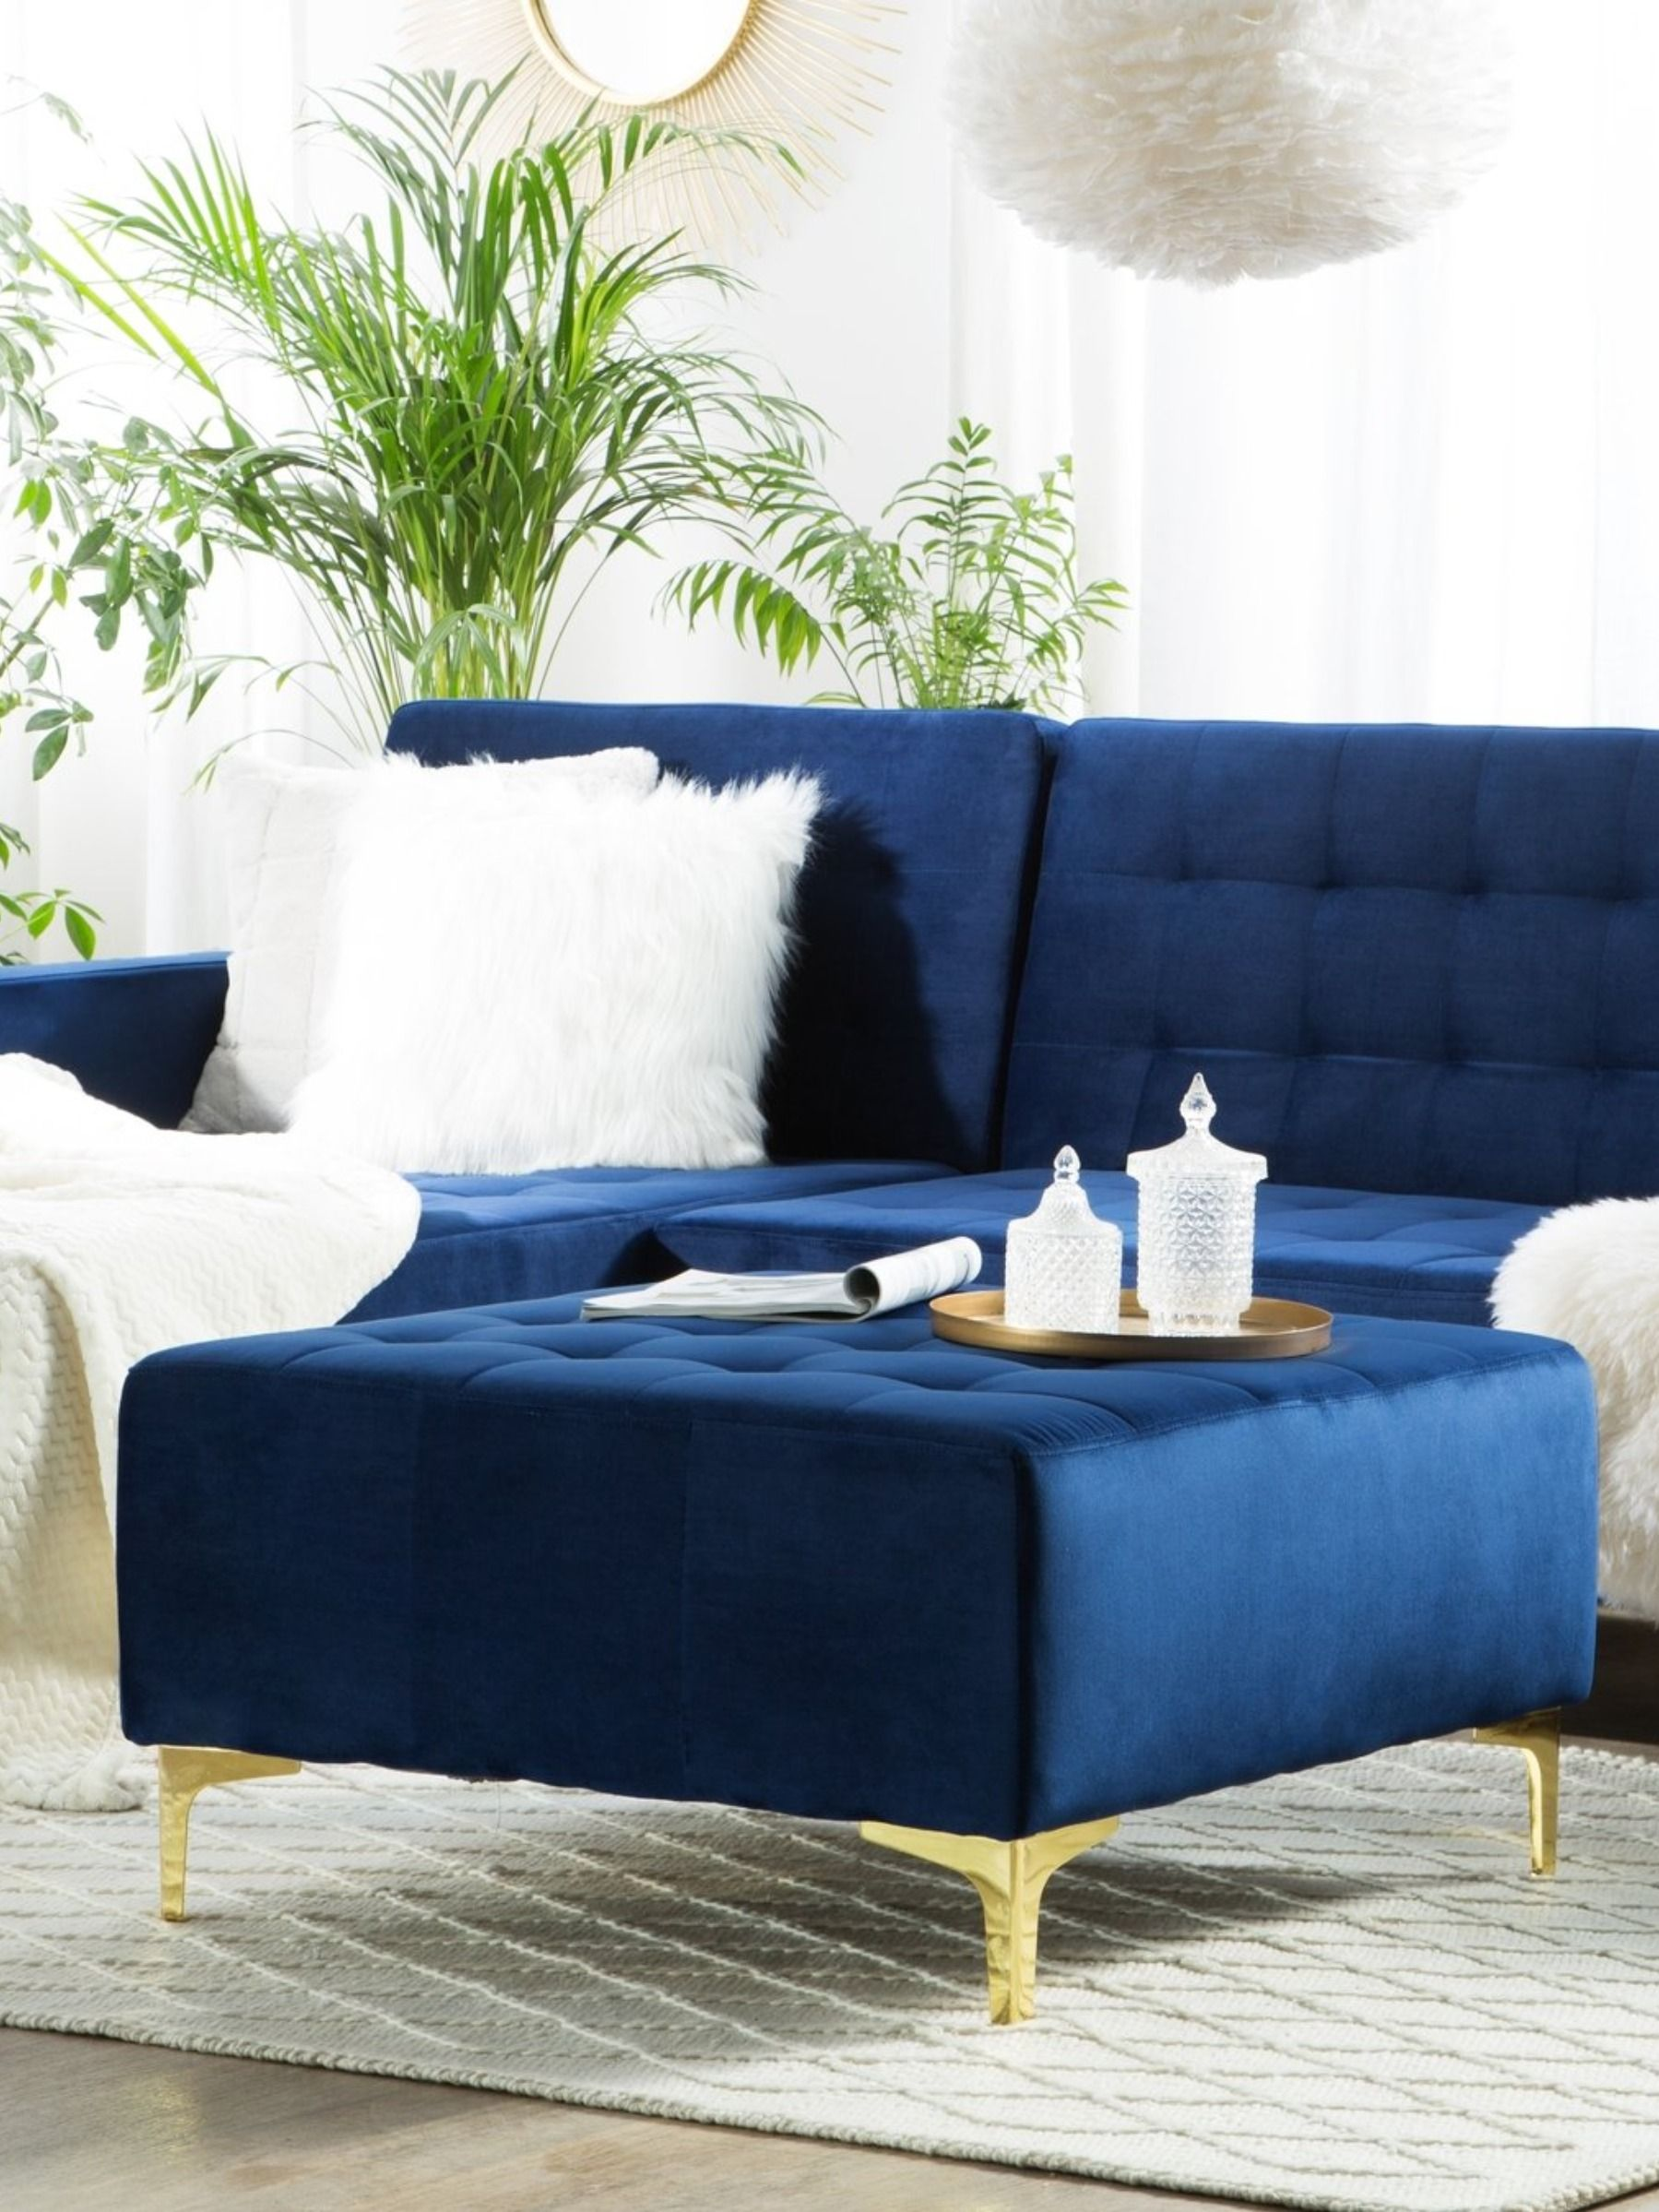 Velvet Navy Blue Ottoman Glamourous Royal Blue Stool Blue Sofa Set Blue Sofas Living Room Blue Ottoman